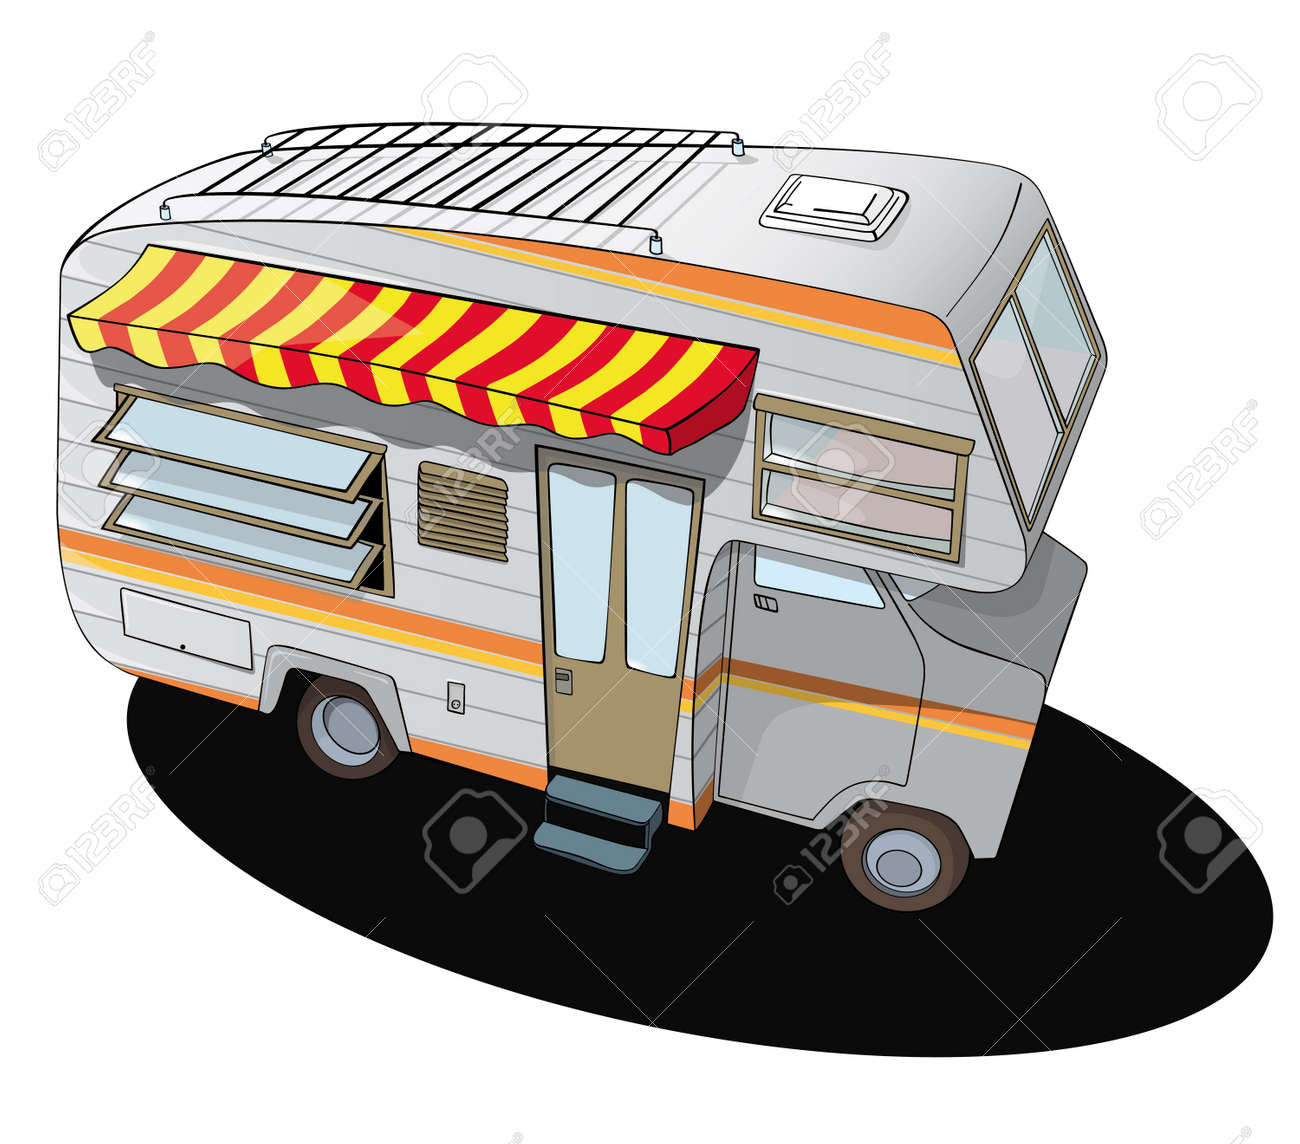 Comic Style Camper Van Stock Vector